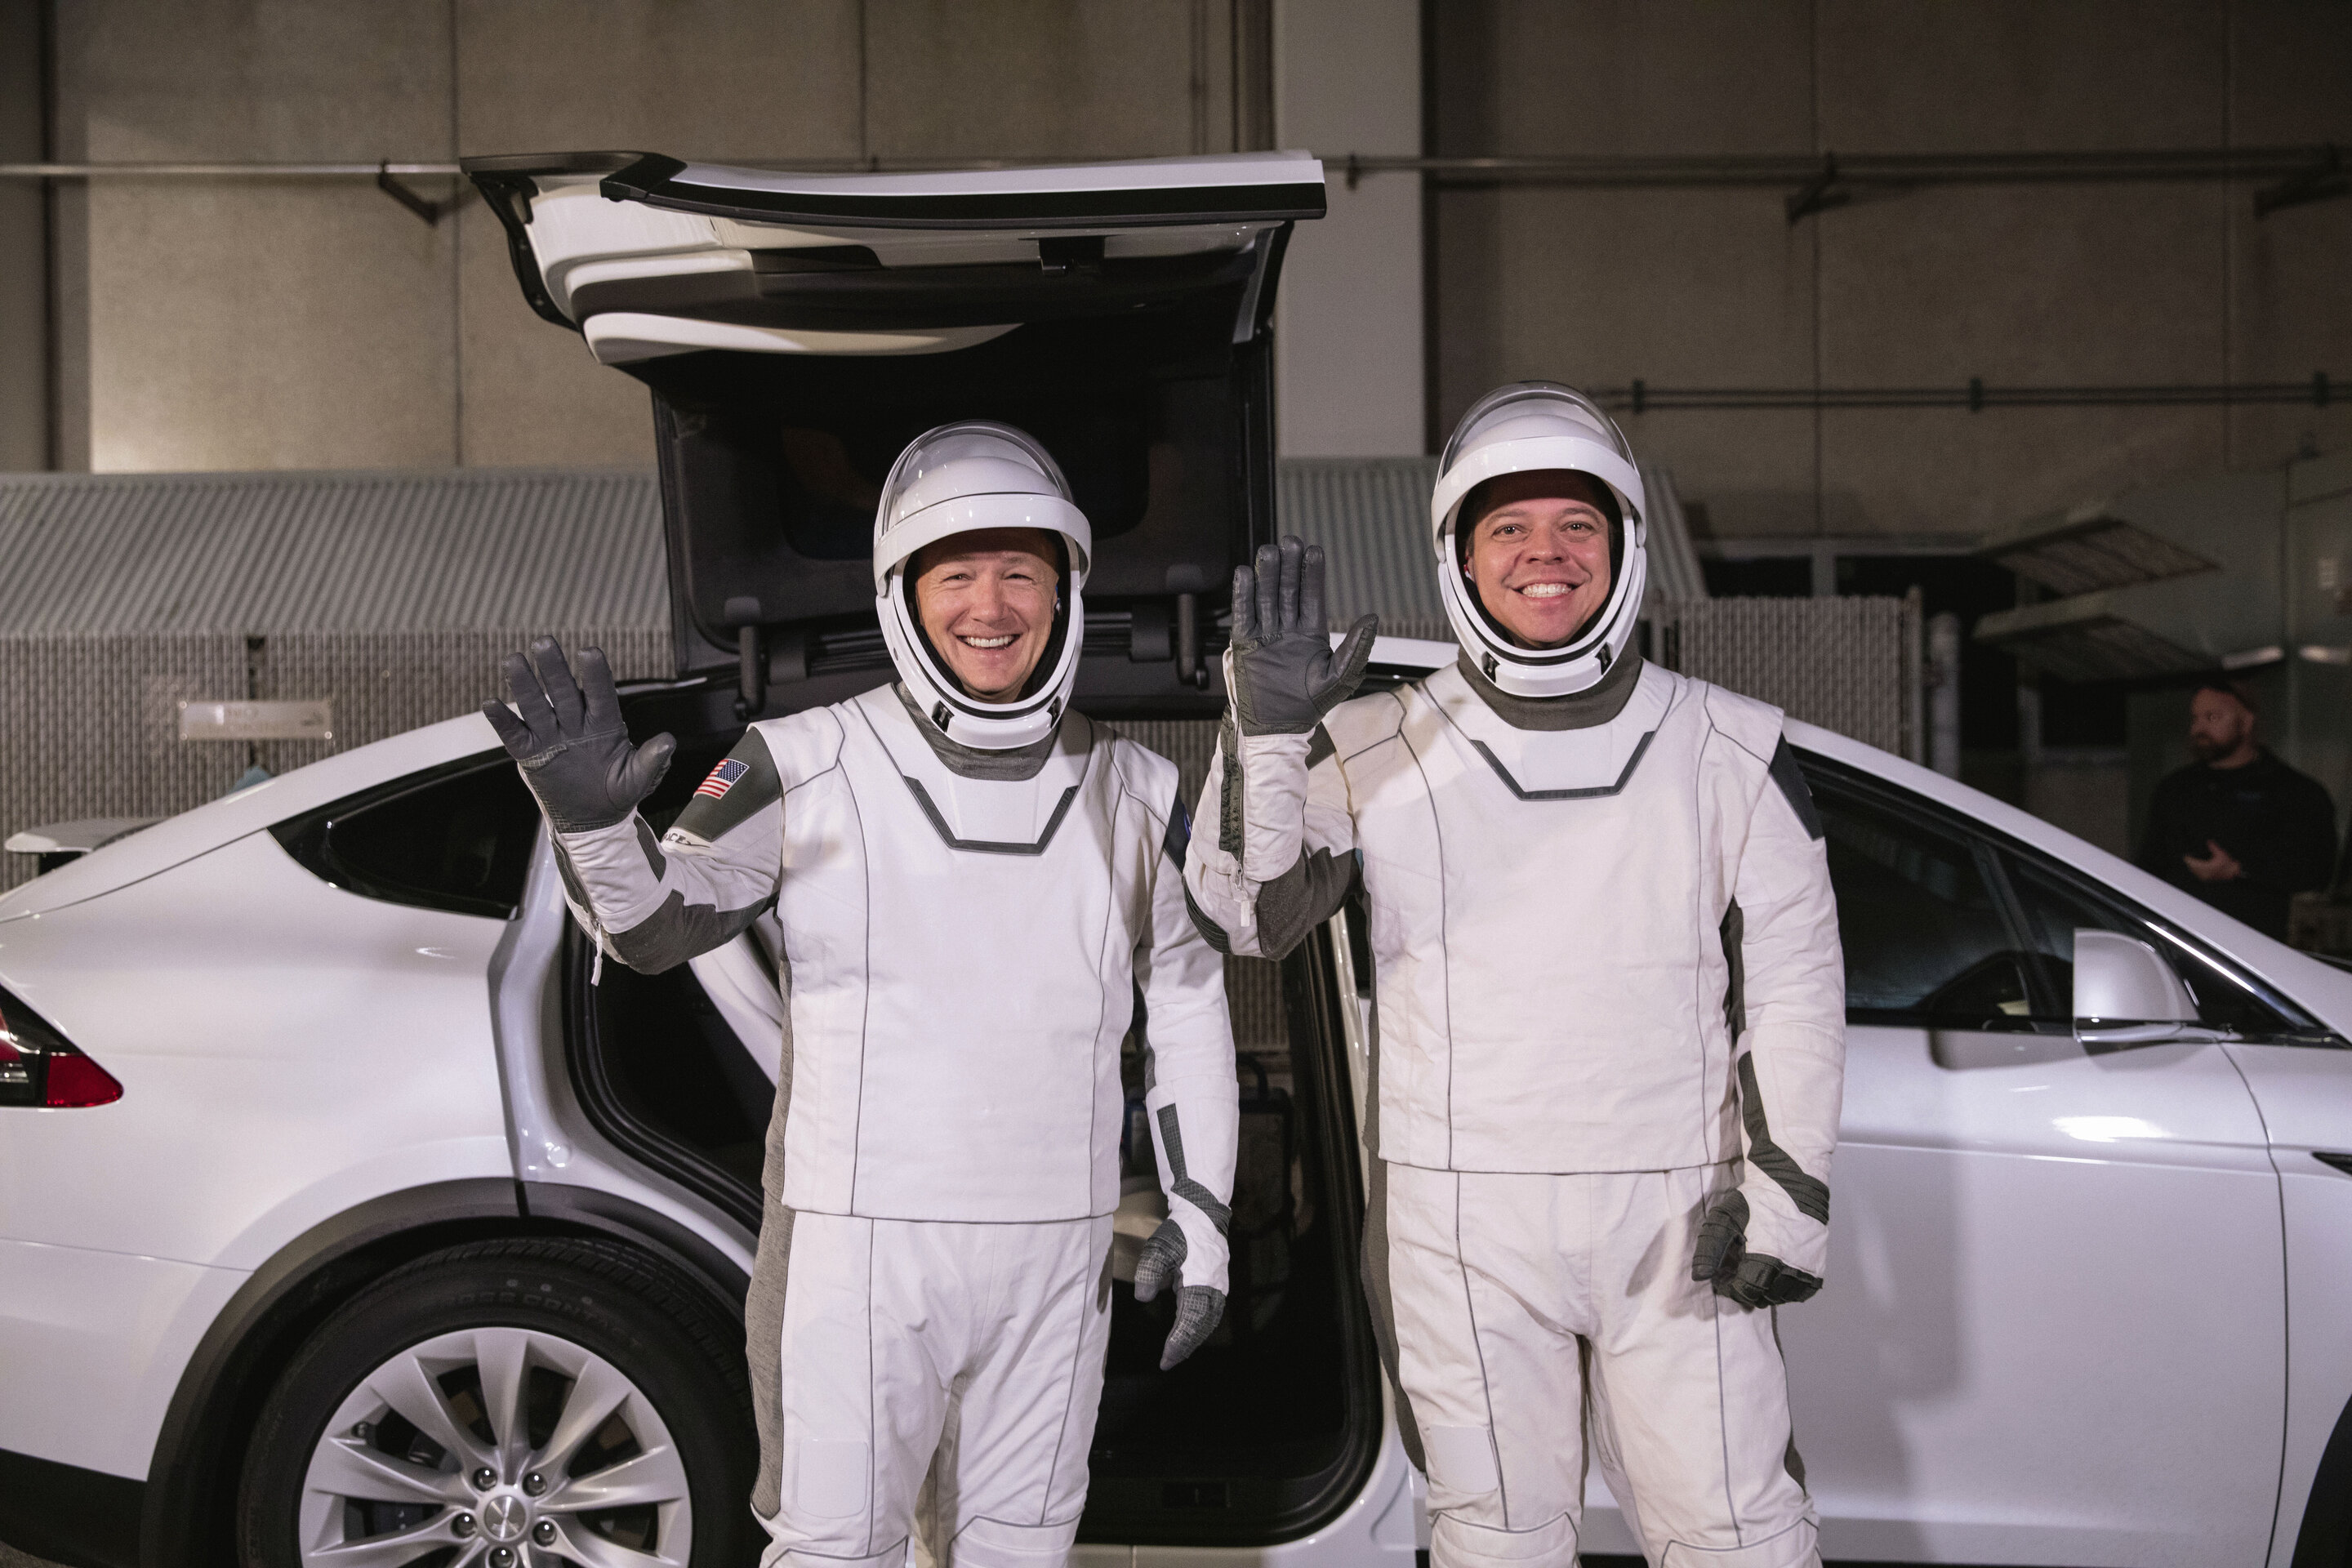 New outfit for SpaceX Launch, expected on 30.05.2020. Copyright: Kim Shiflett/NASA via AP